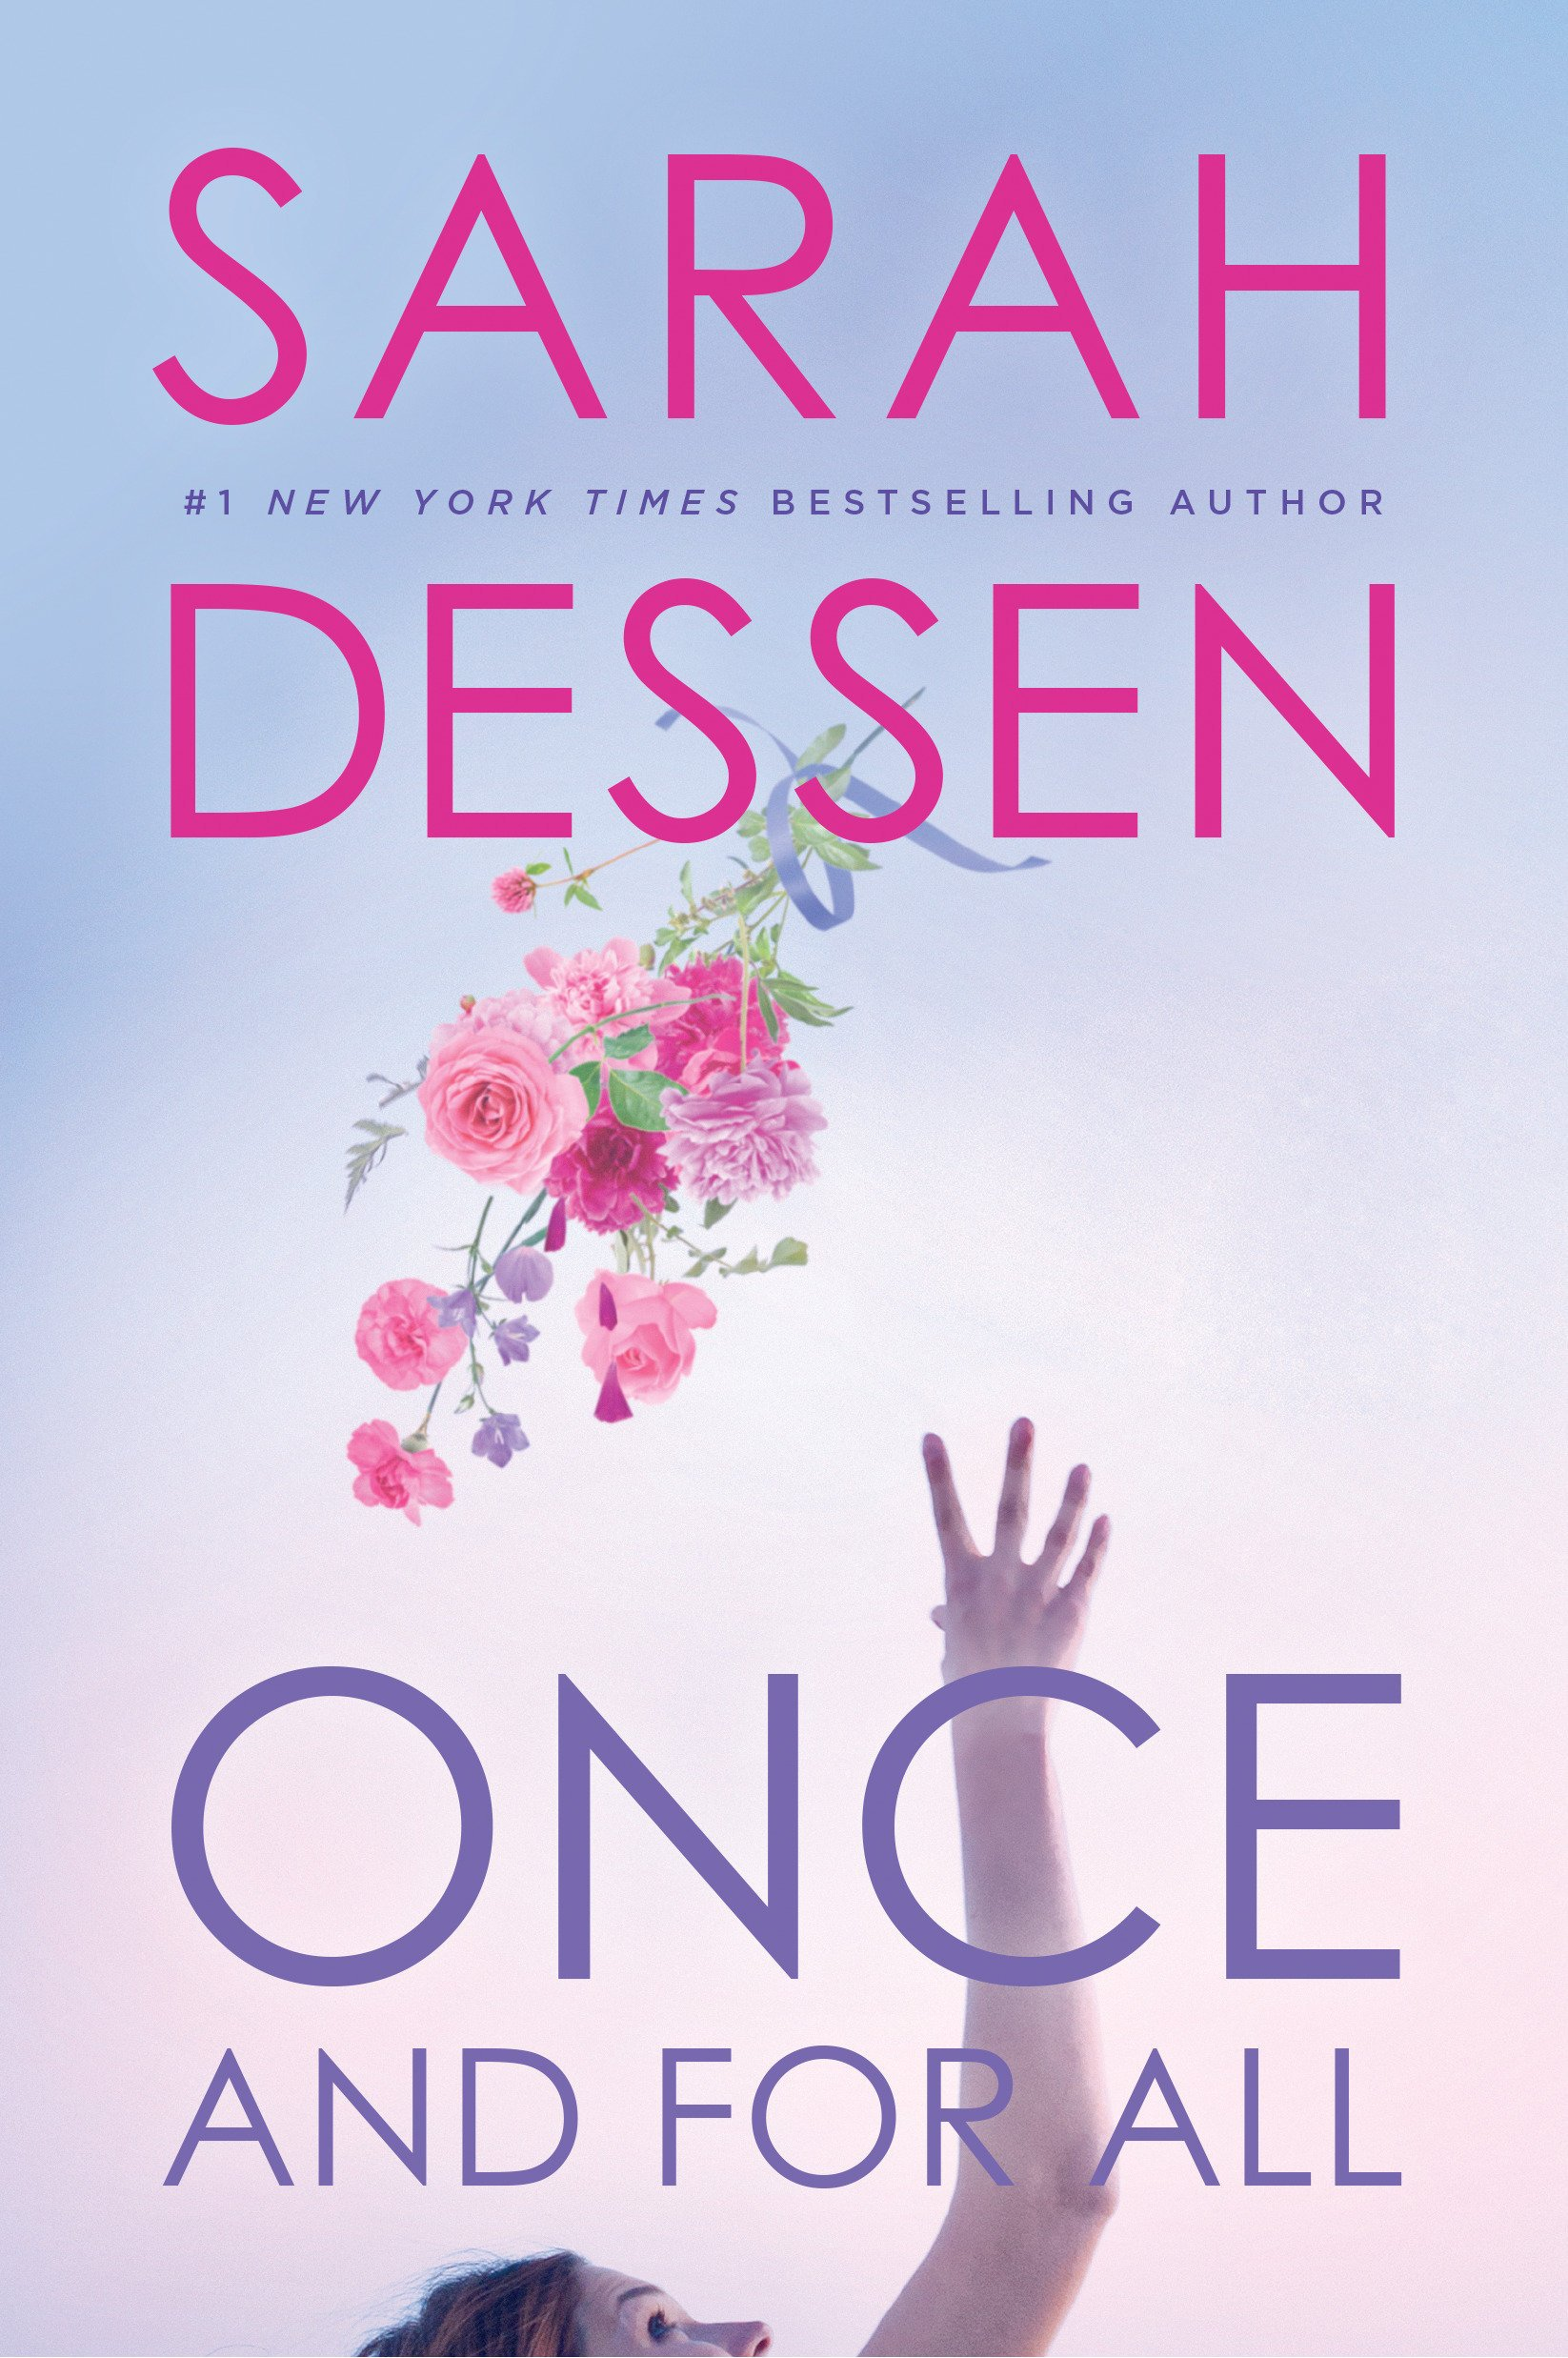 Amazon.com: Once and for All (9780425290354): Dessen, Sarah: Books